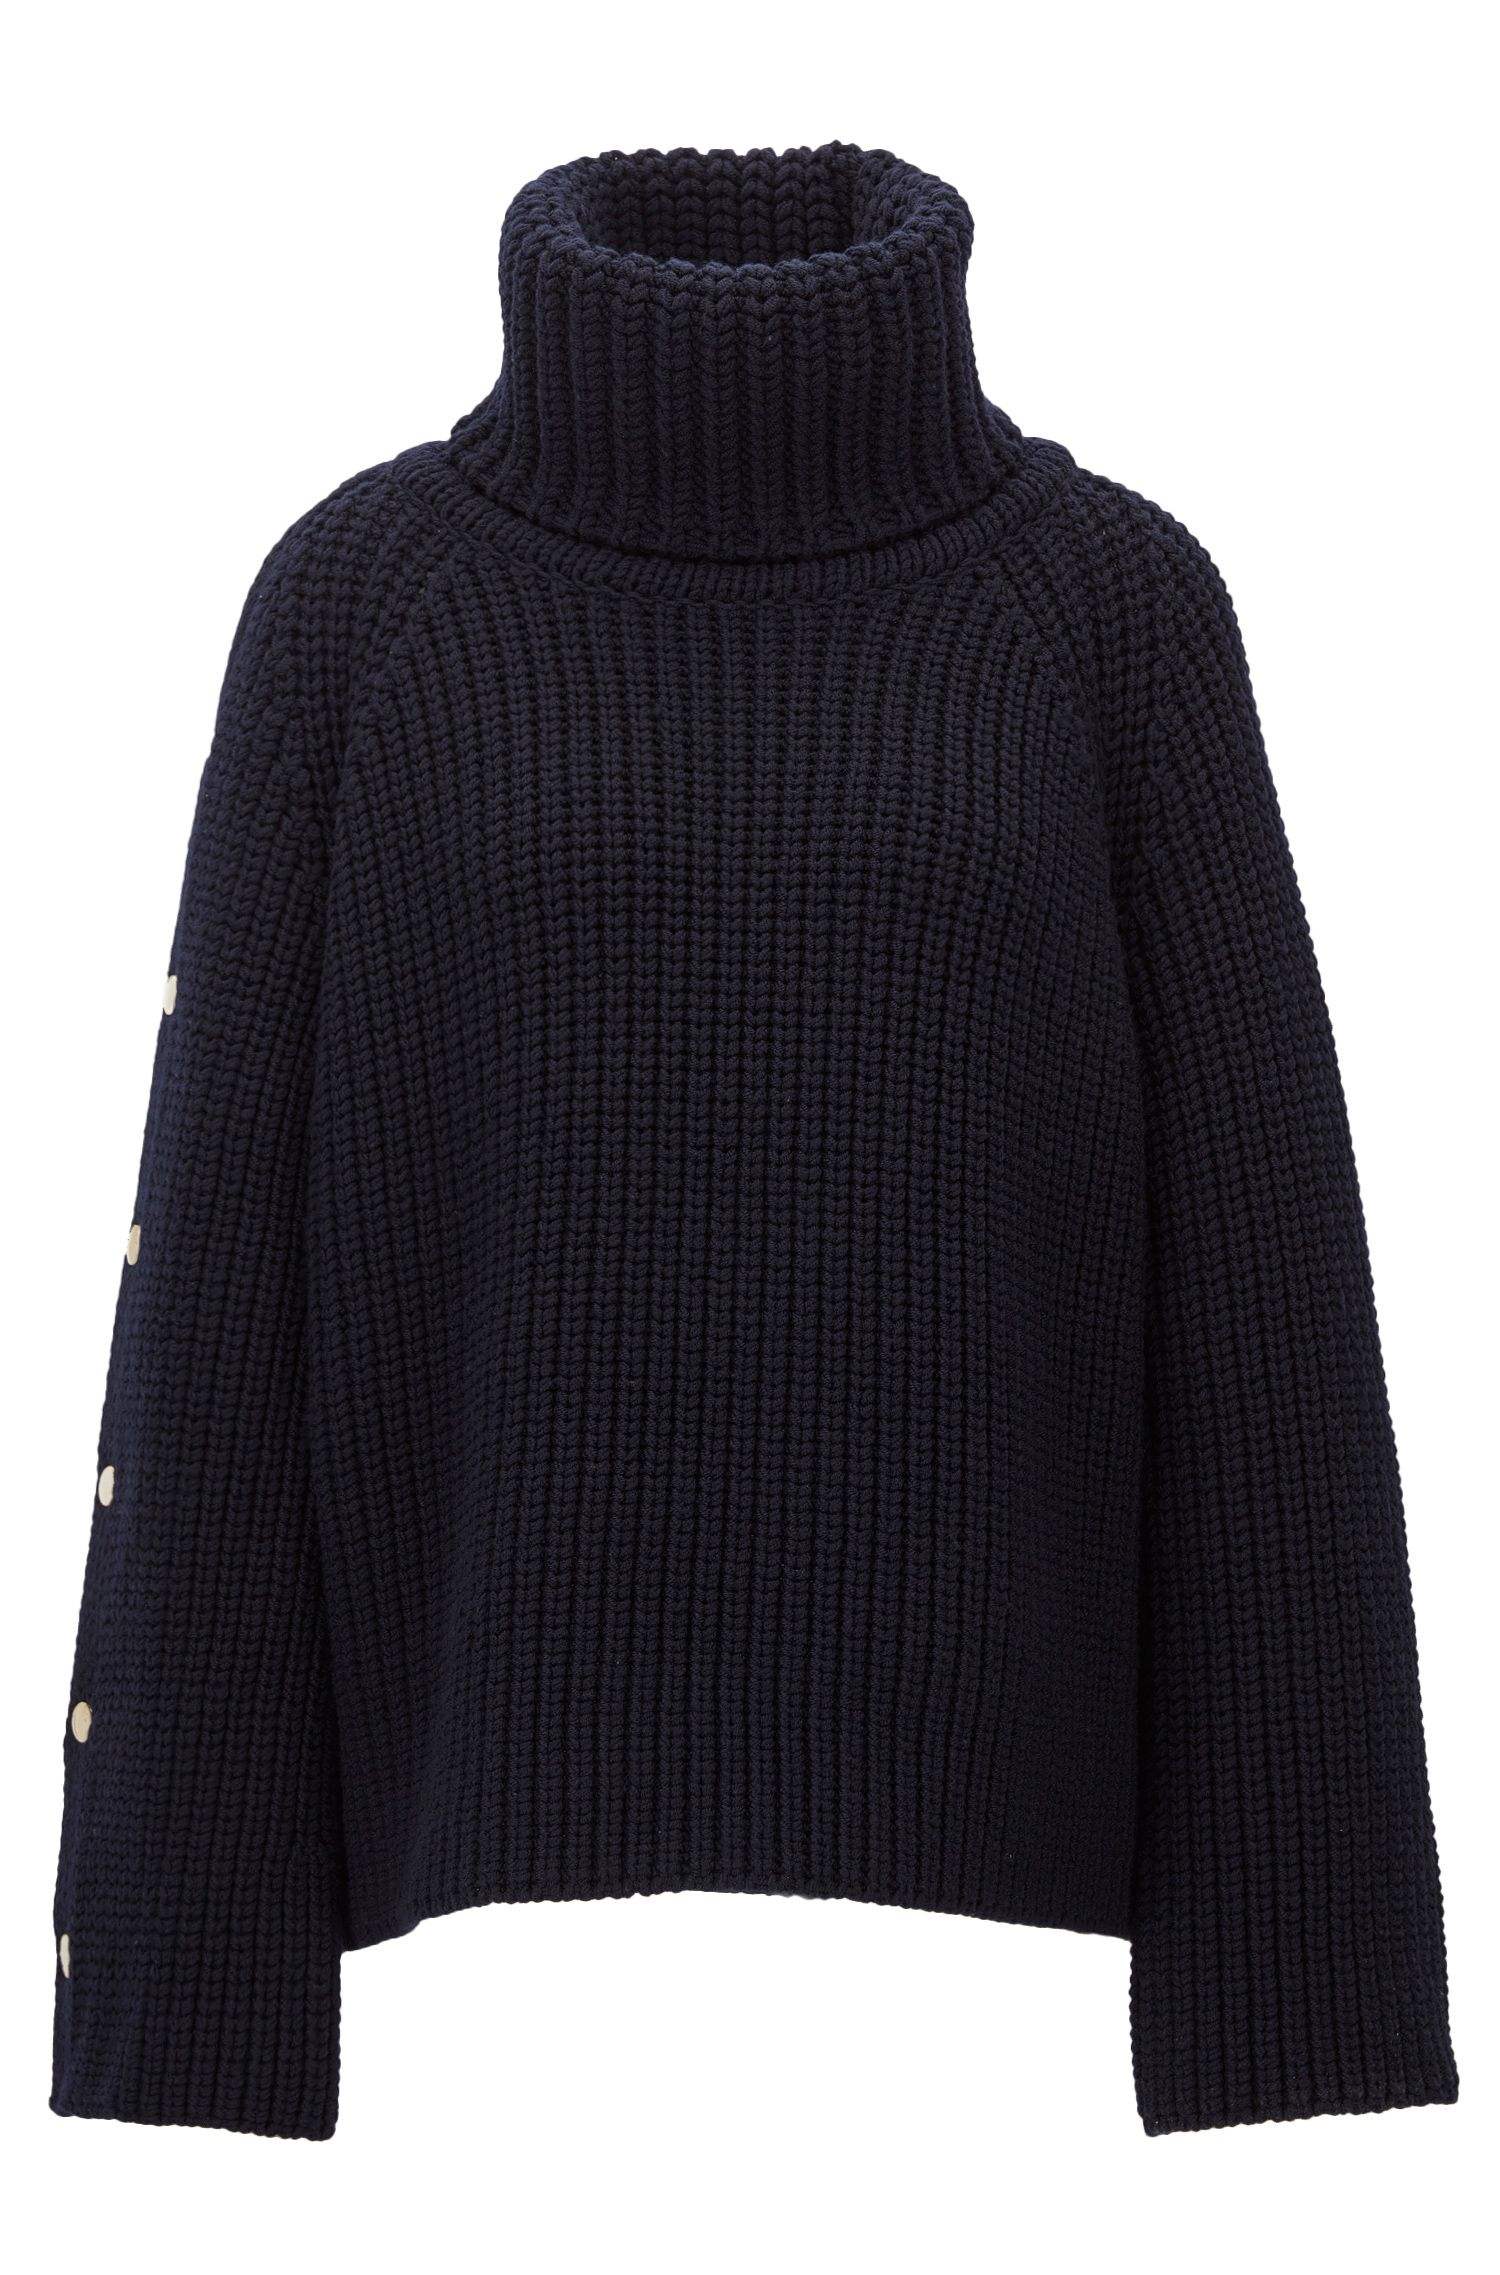 'Feva' | Virgin Wool Chunky Turtleneck Sweater